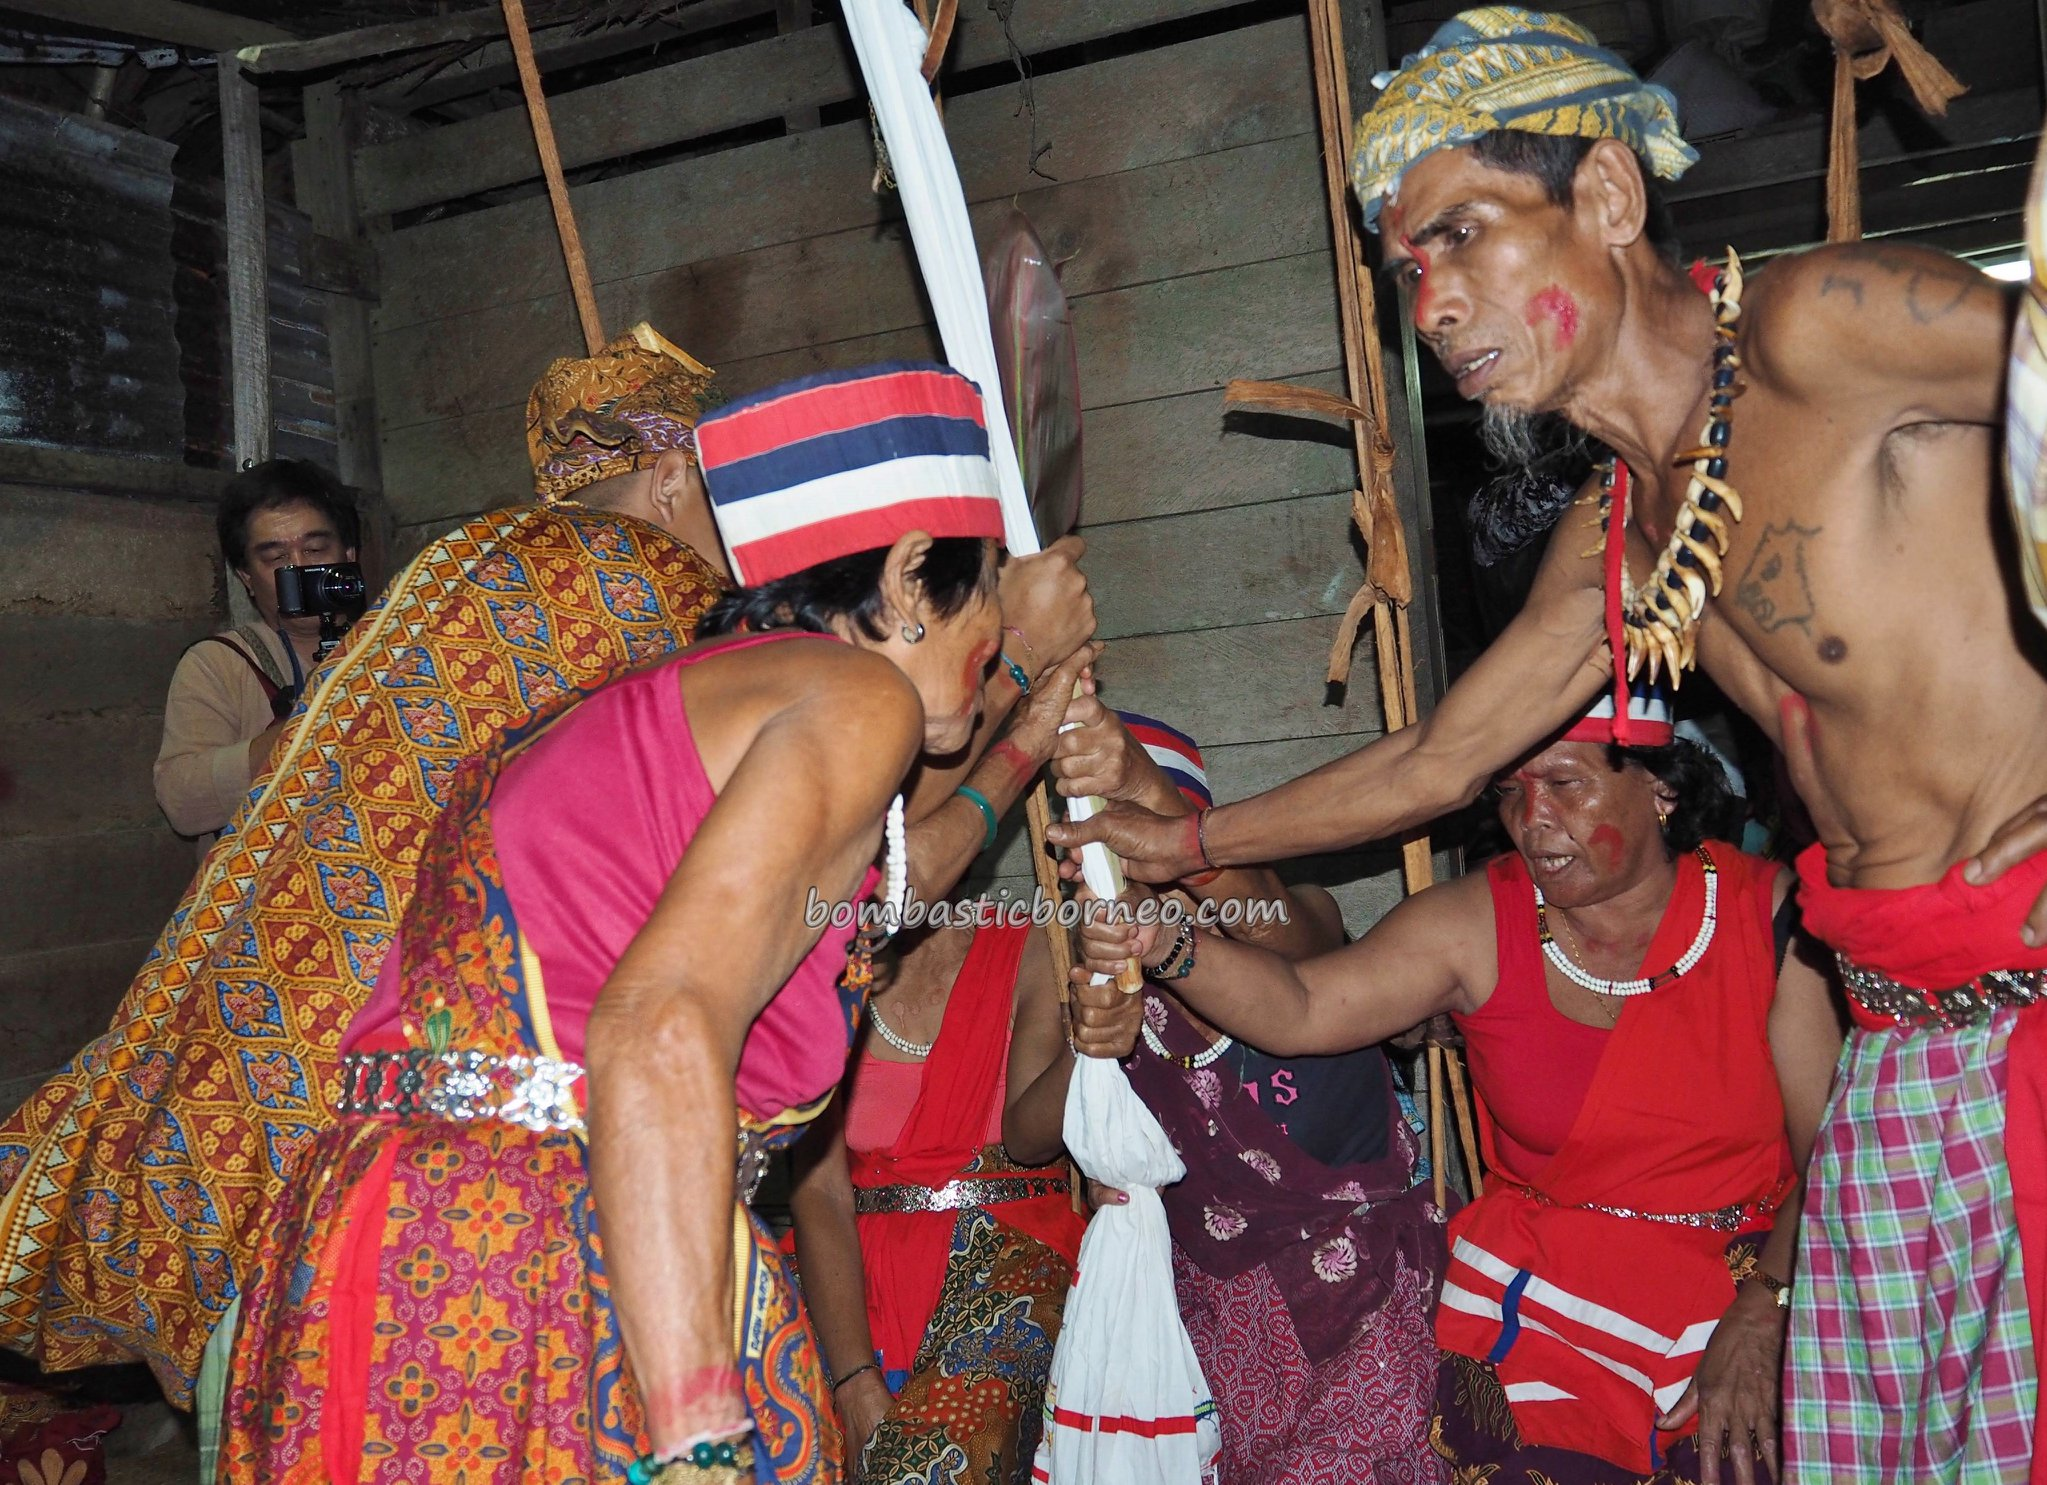 spiritual healing, ritual, authentic, traditional, budaya, Indigenous, Dayak Bidayuh, tribal, Bau, Tourism, Travel guide, 穿越婆罗洲游踪, 砂拉越原住民文化, 古晋比达友族祭司